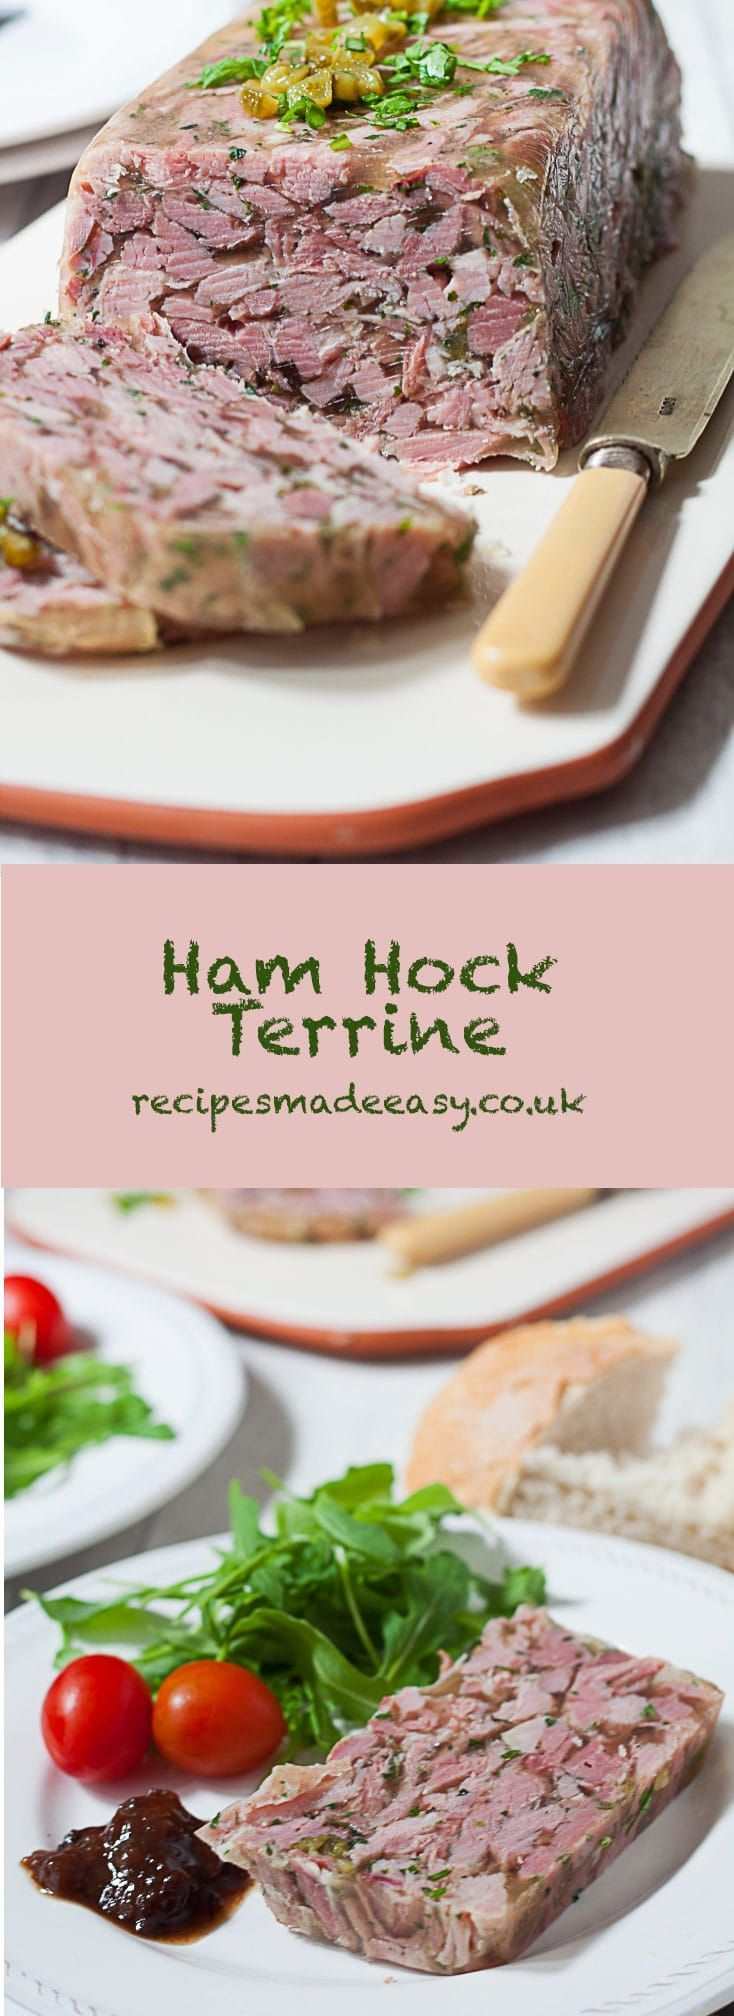 Ham Hock Terrine makes an elegant and tasty starter. Packed with flavour and very economical too.    #Starter #Appetiser #lunch #buffet   via @jacdotbee